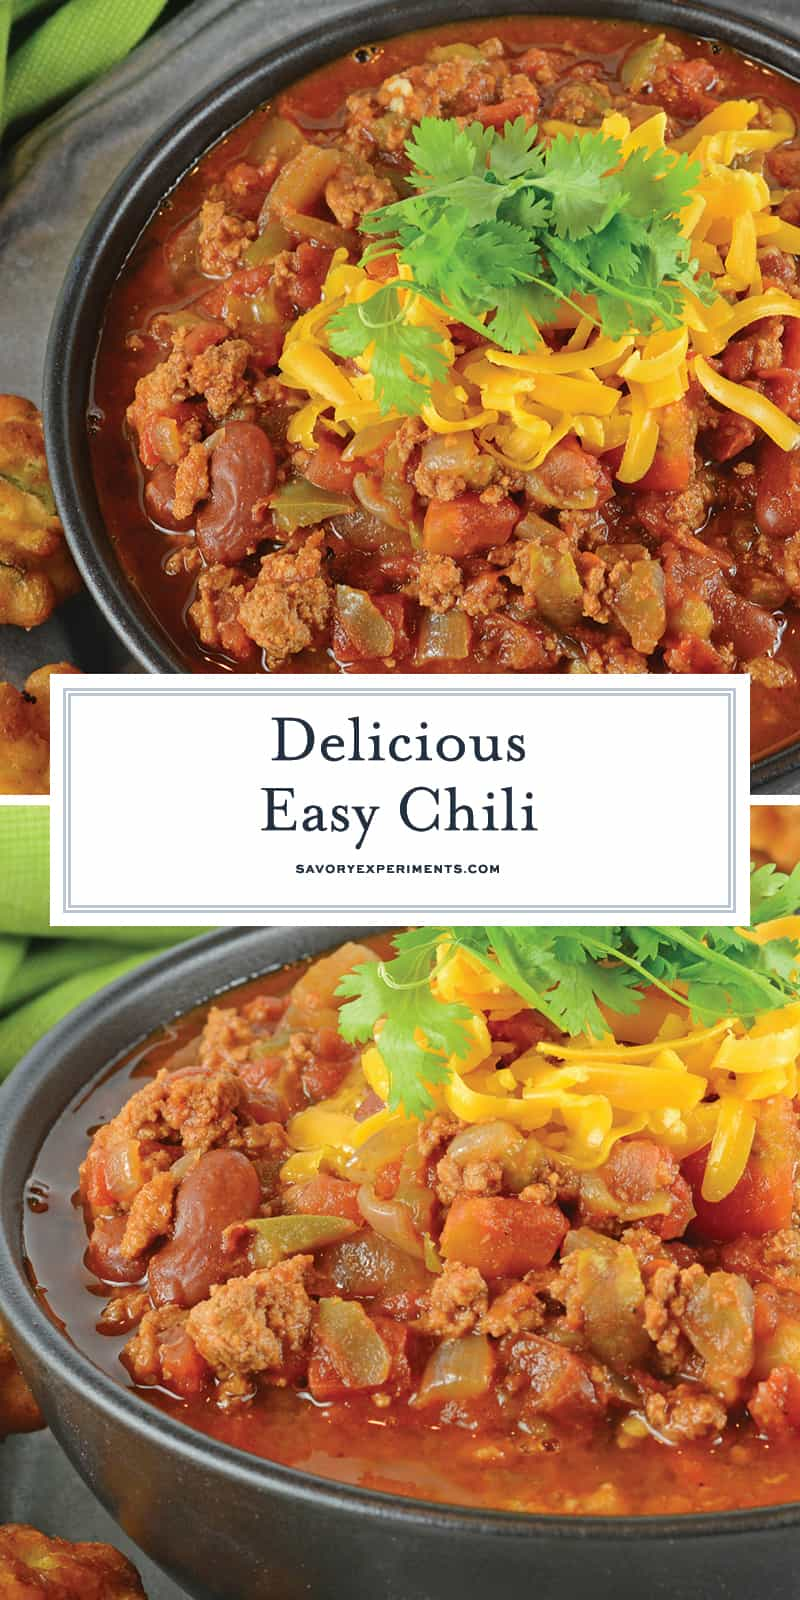 Easy Chili is a spicy mix full of ground beef, Italian sausage and vegetables, but the secret ingredient makes it different from every other chili out there! #chilirecipe #bestchilirecipe www.savoryexperiments.com